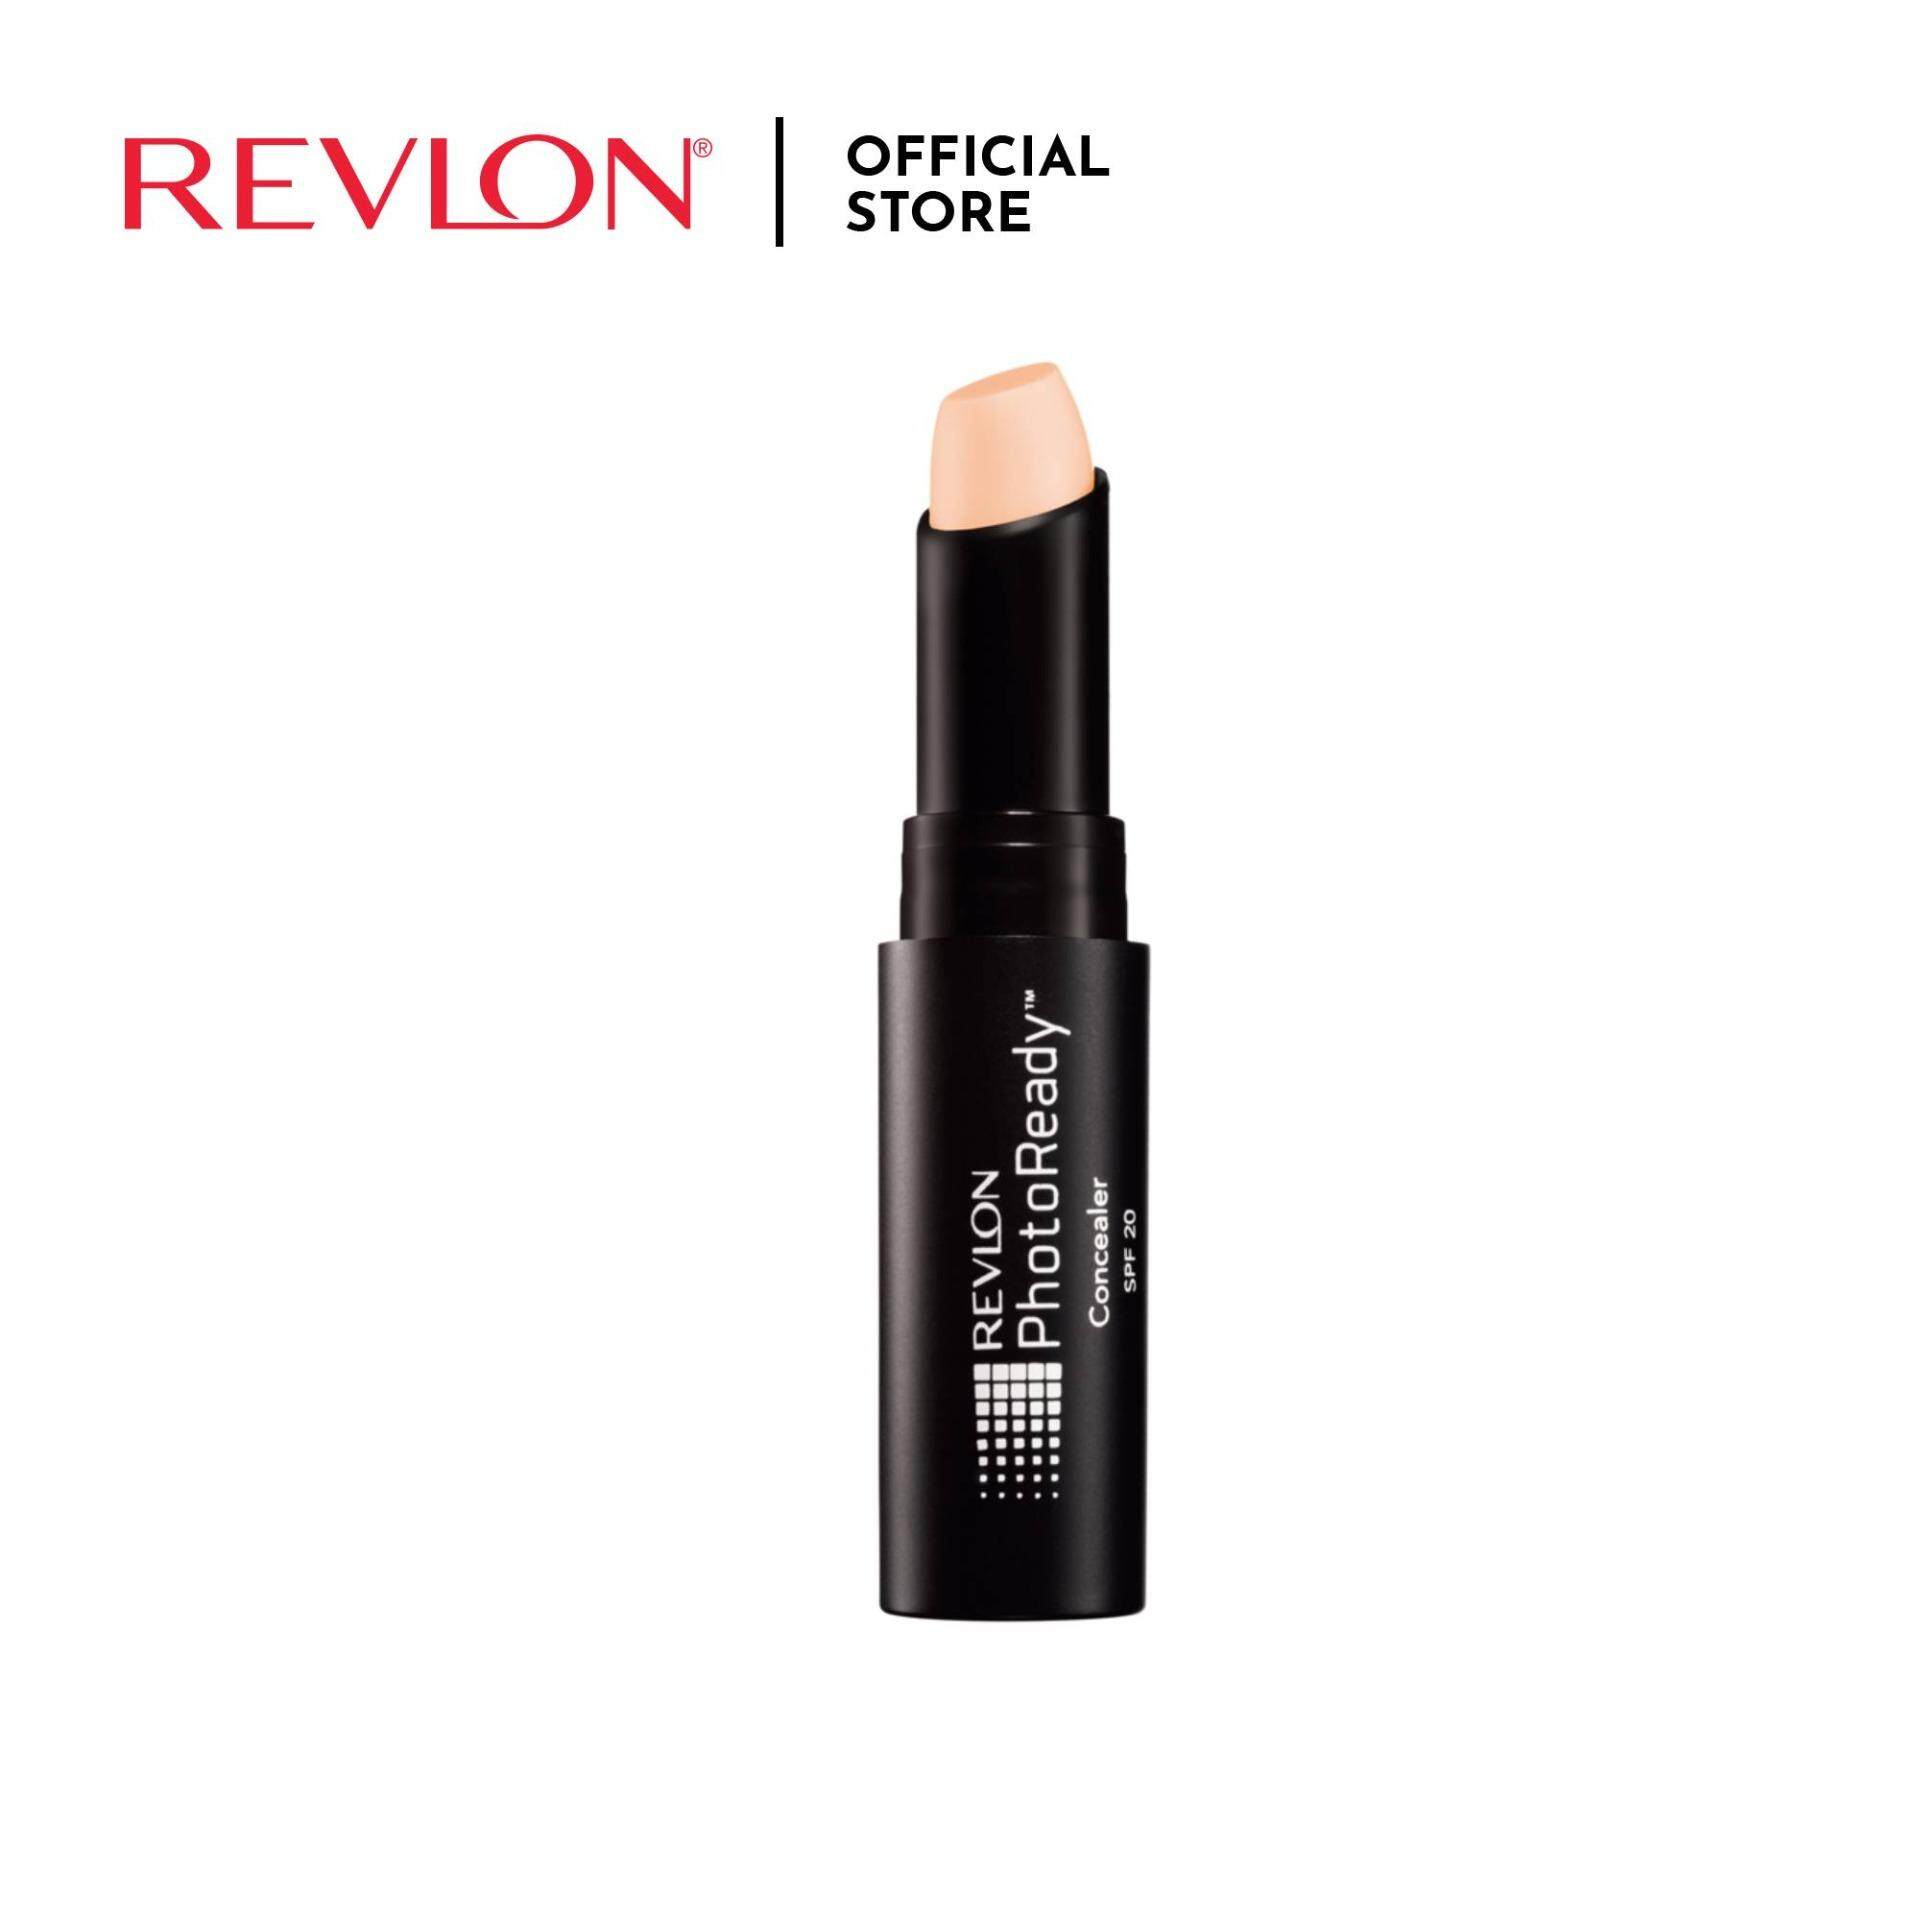 Revlon Photoready Concealer -Light Medium 003